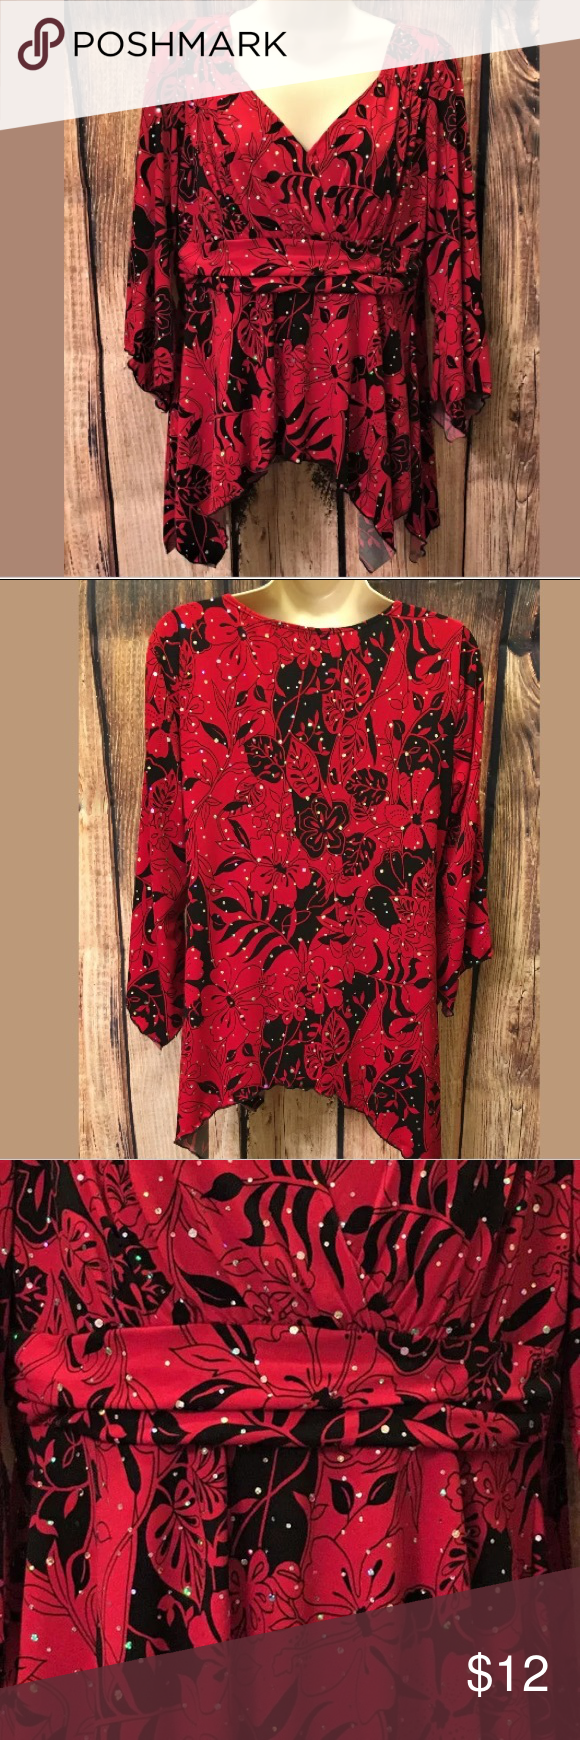 New directions long sleeve top large color red and conditioning